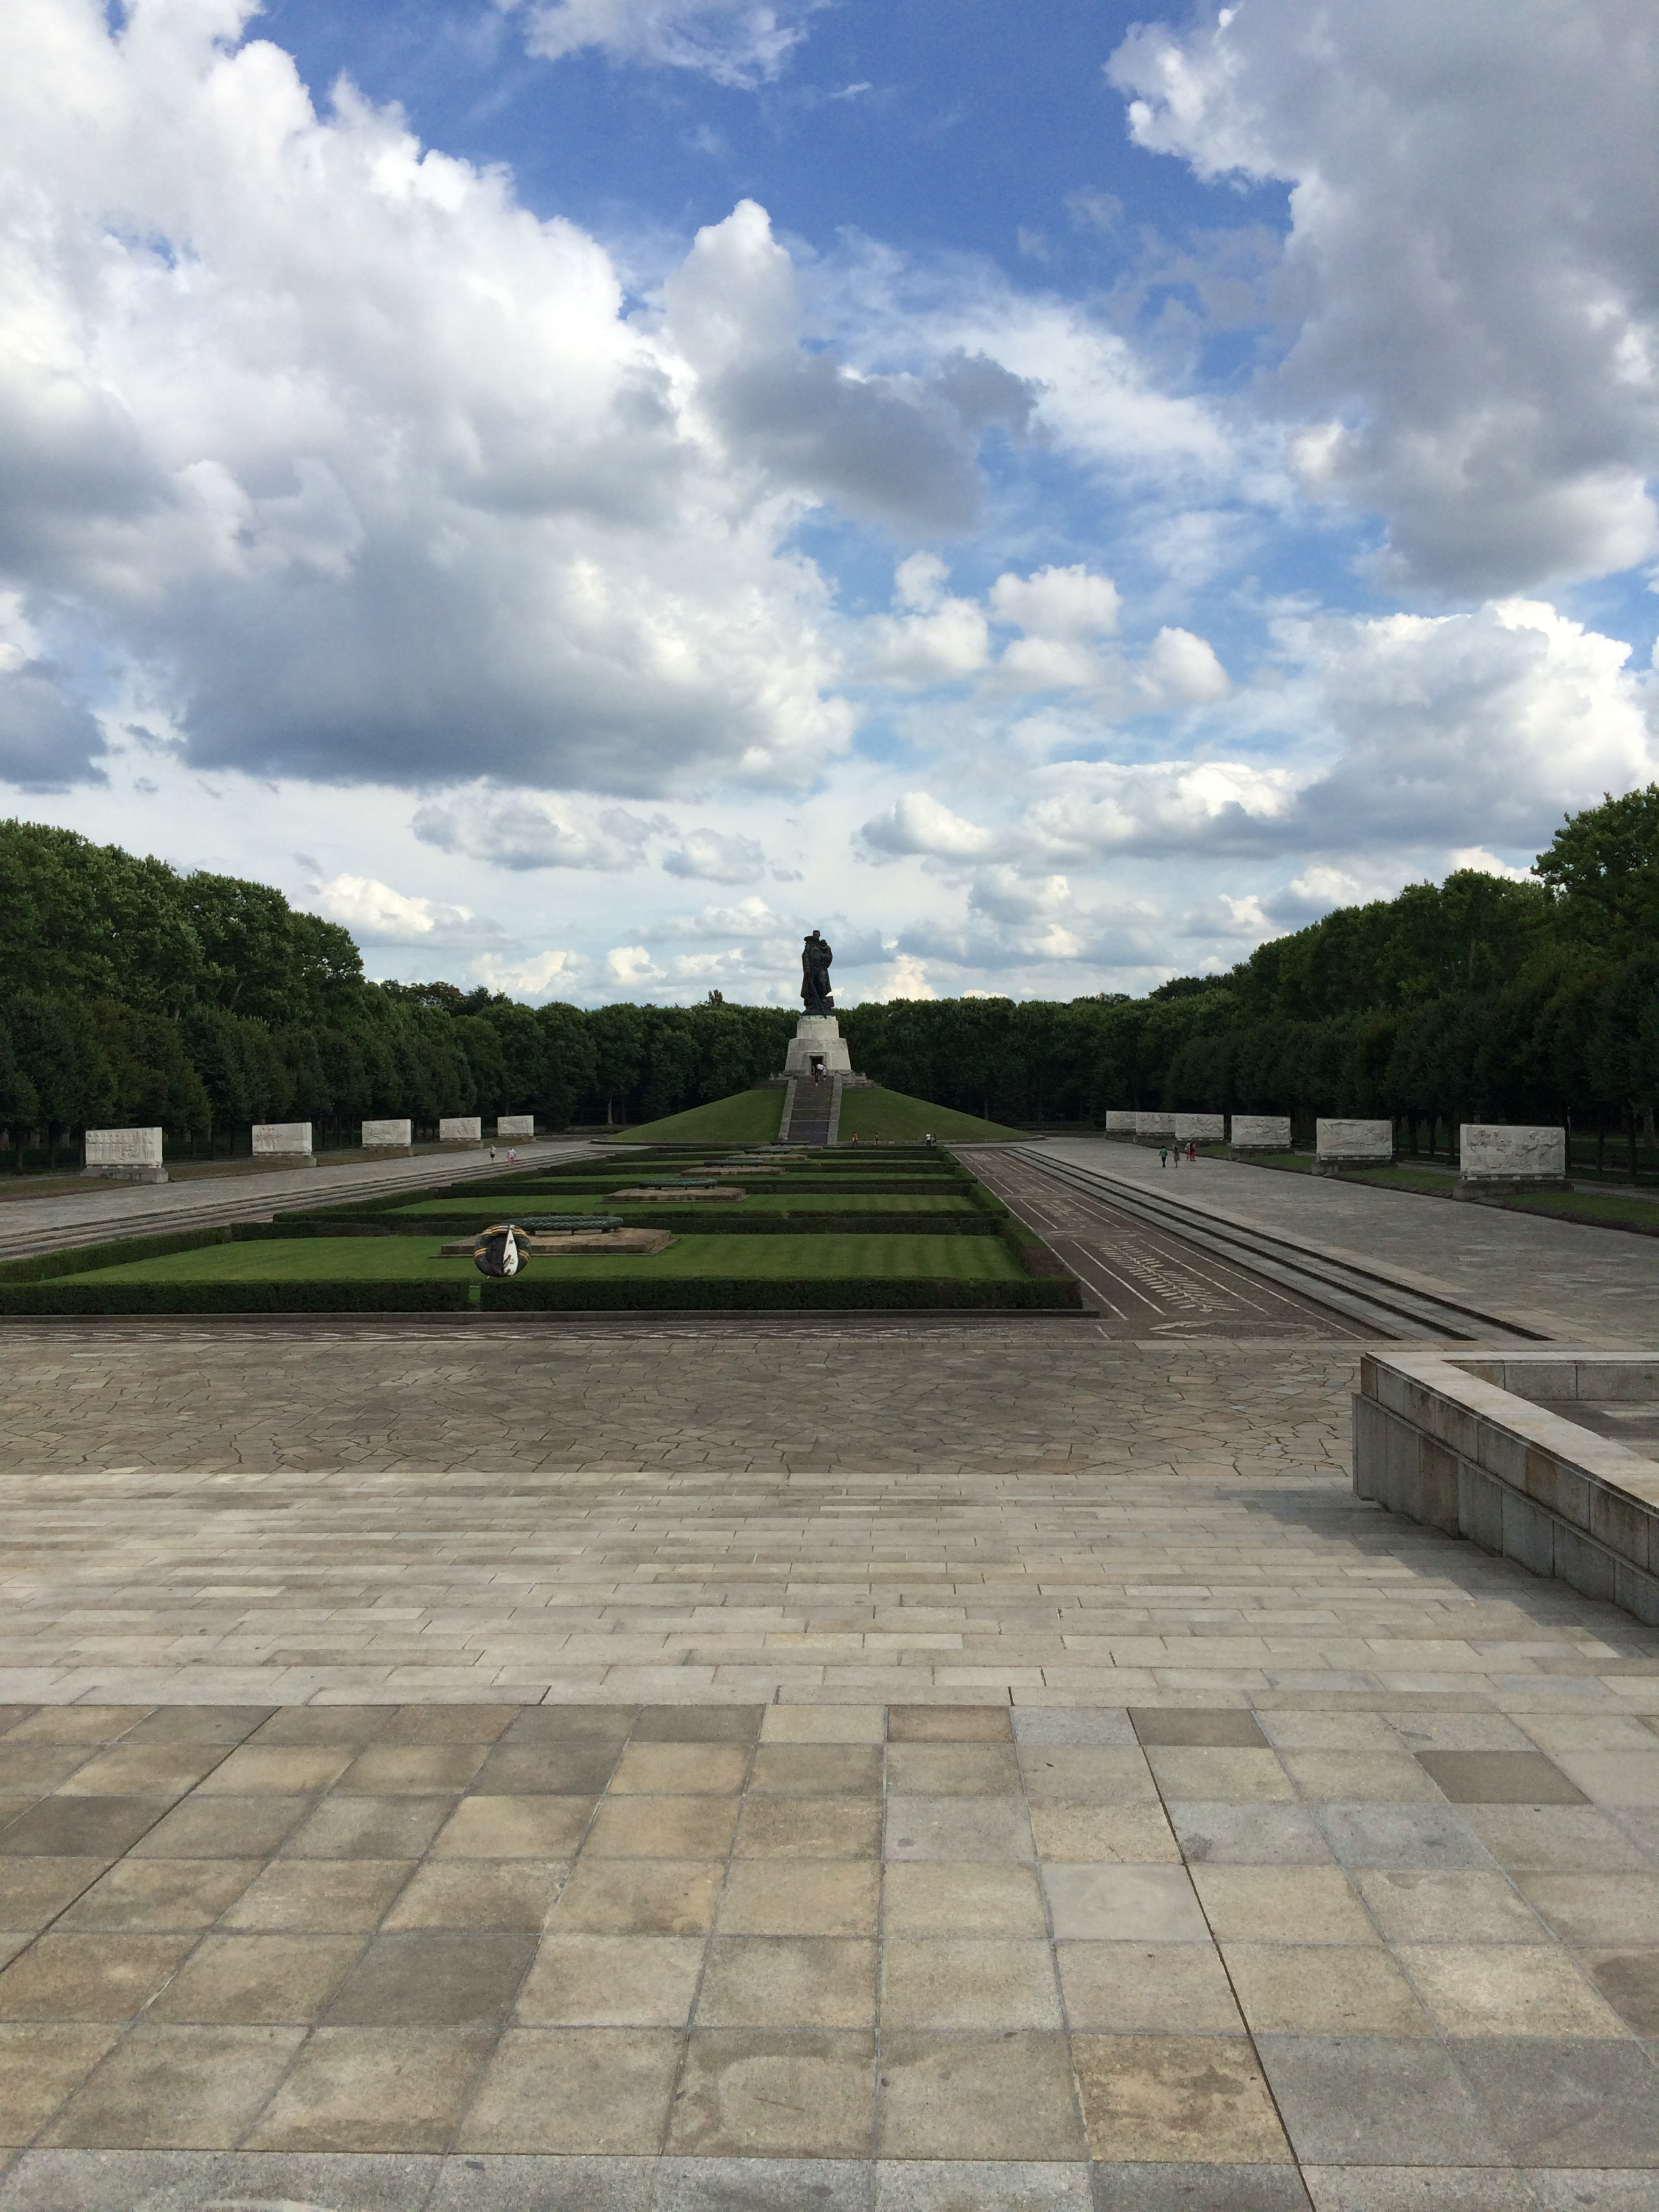 Monument to the Soviet soldiers who fought in WWII, Treptower Park